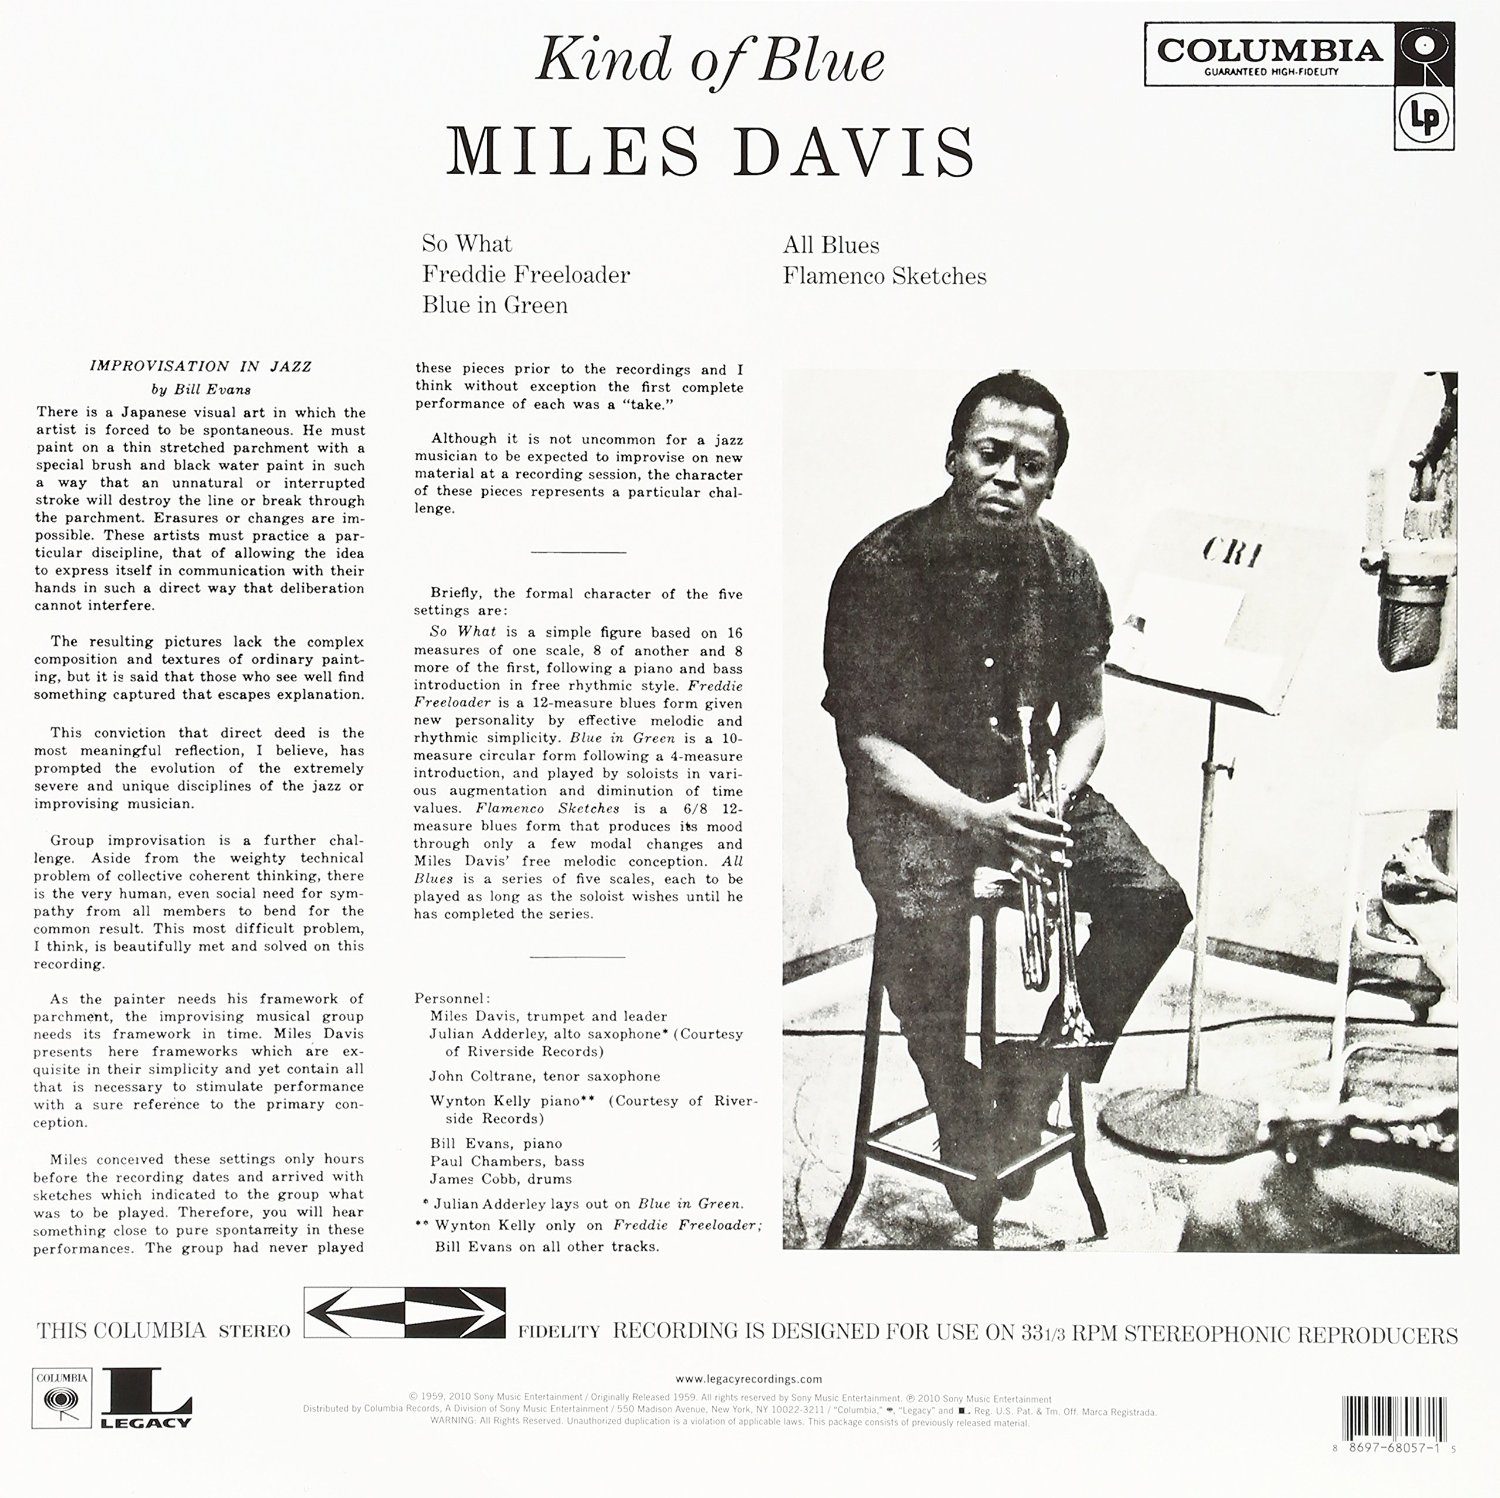 Disco de Vinil Miles Davis Kind of Blue 180 gramas